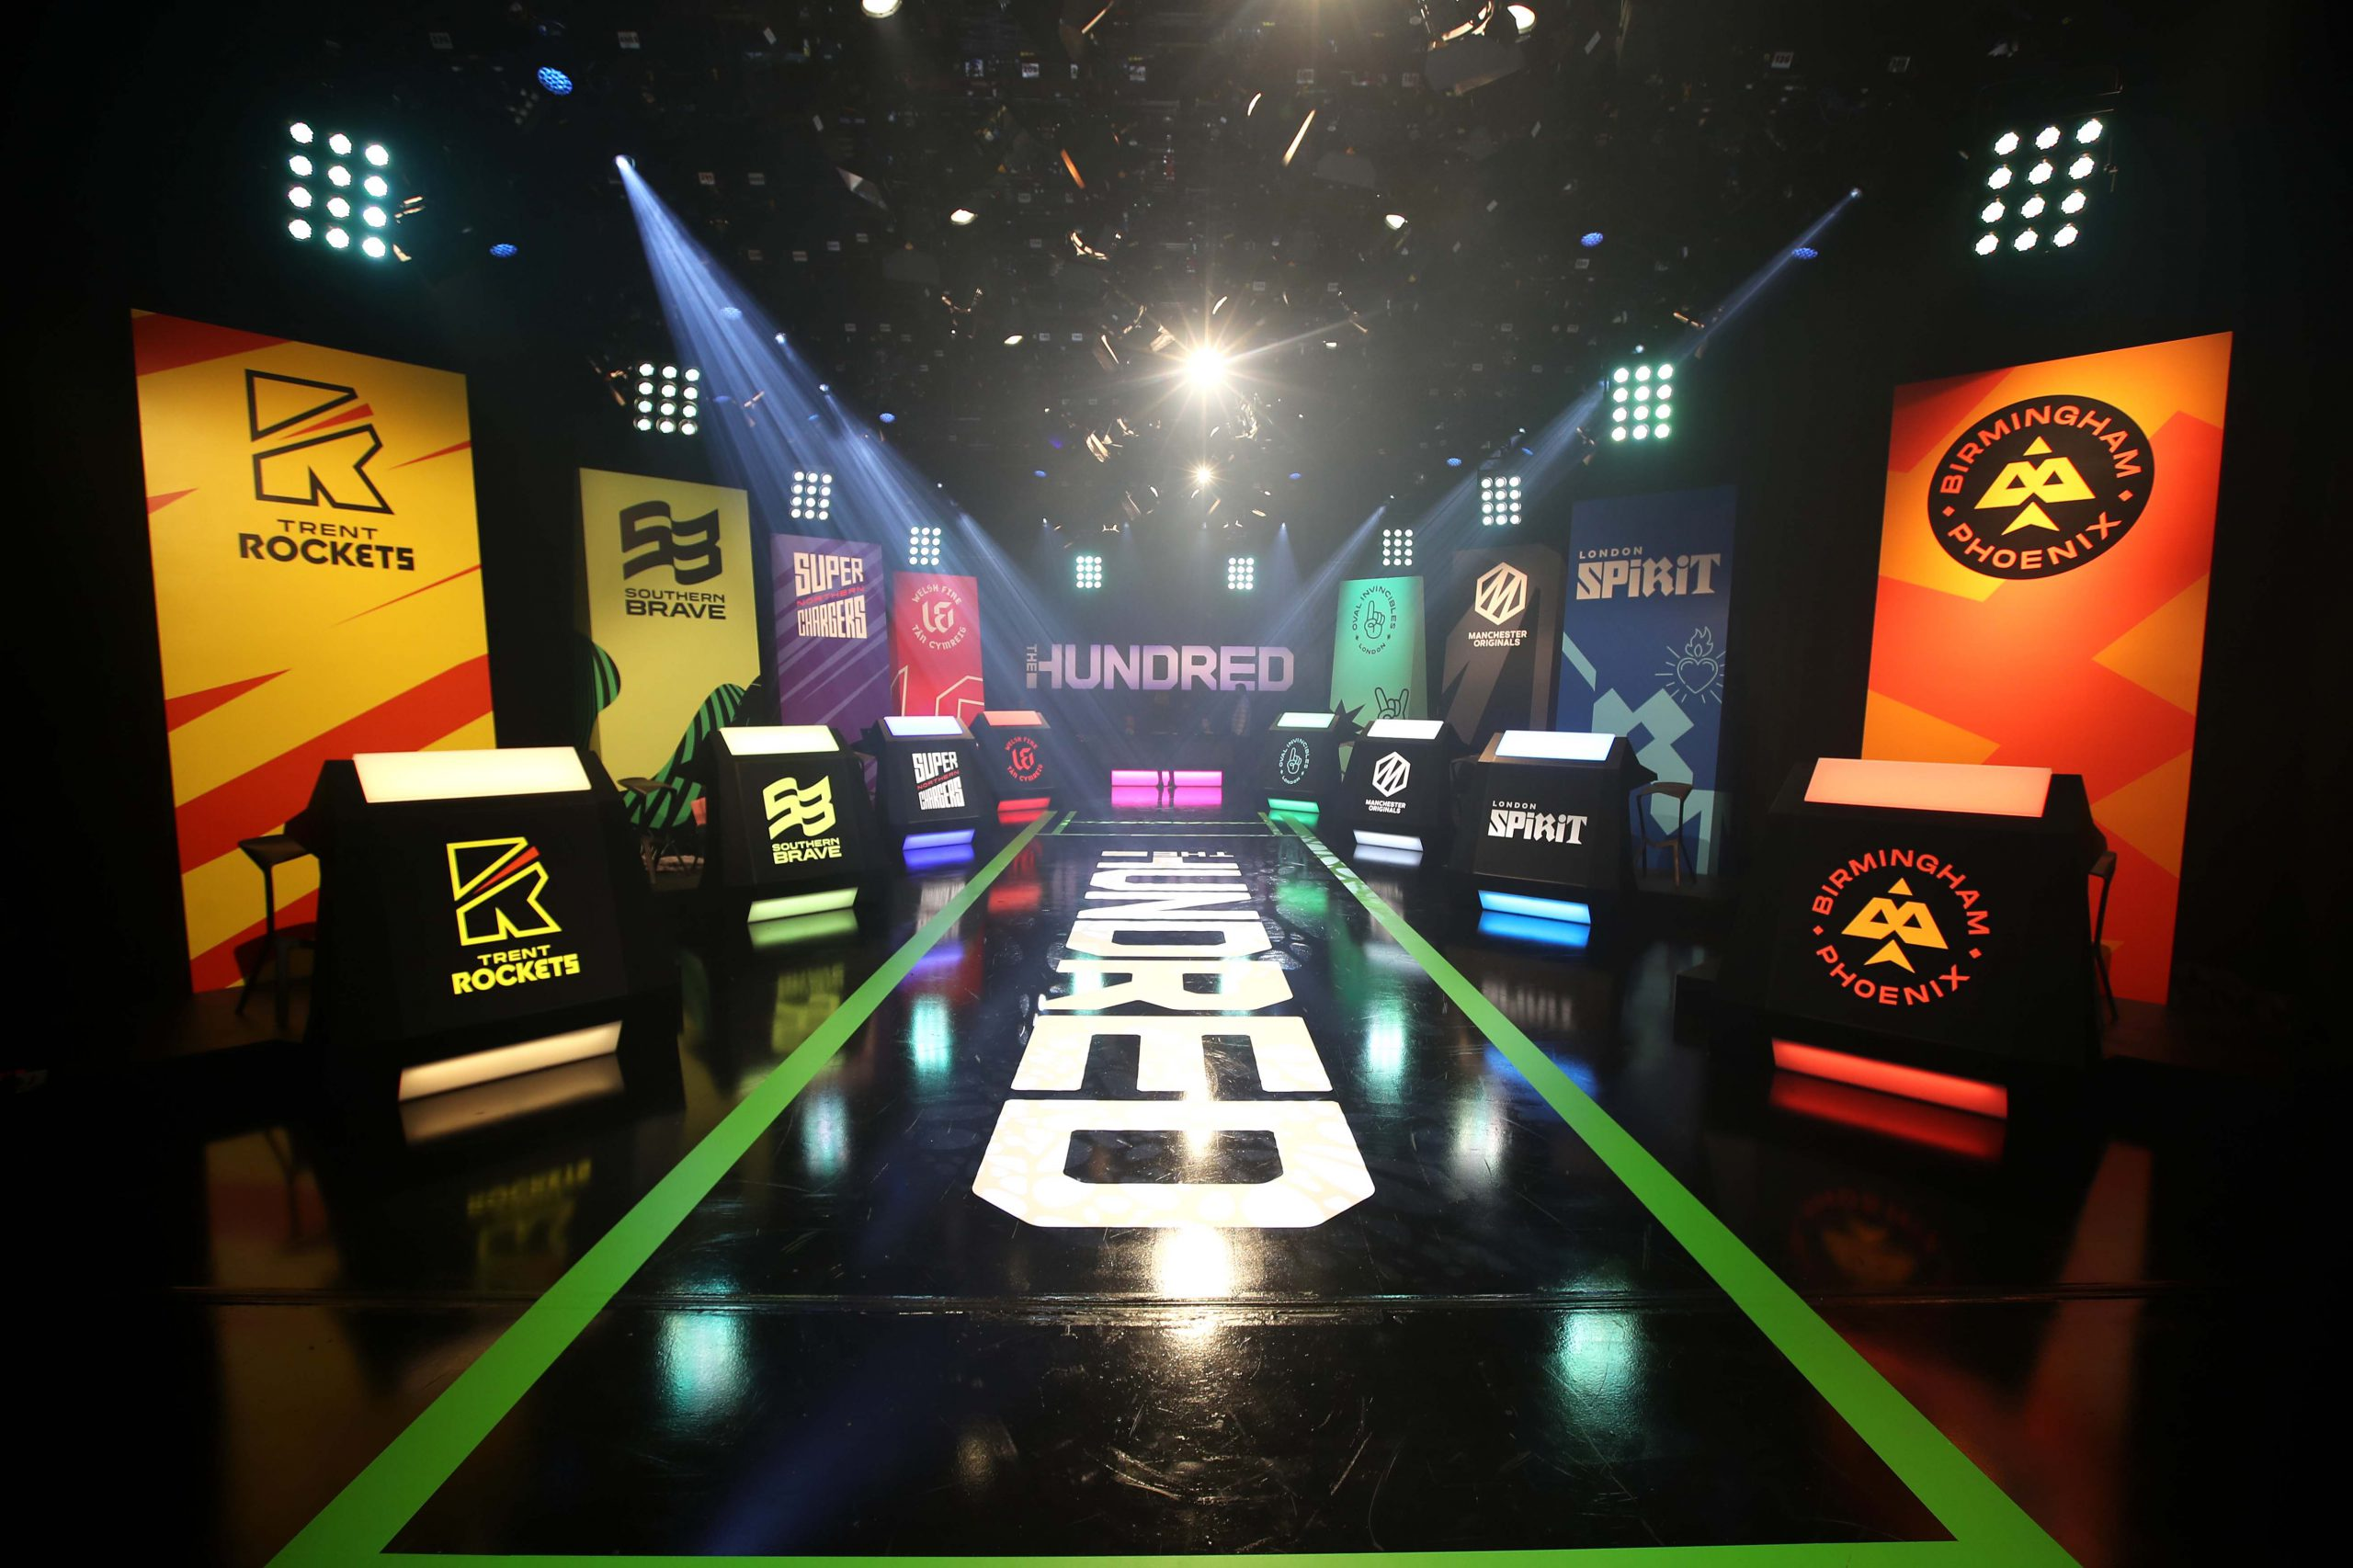 20 October 2019: The Sky Studios broadcasting studio in Isleworth, England, ahead of The Hundred draft for the men's teams. The new cricket tournament features eight teams, each with a squad of 15 men and 15 women.